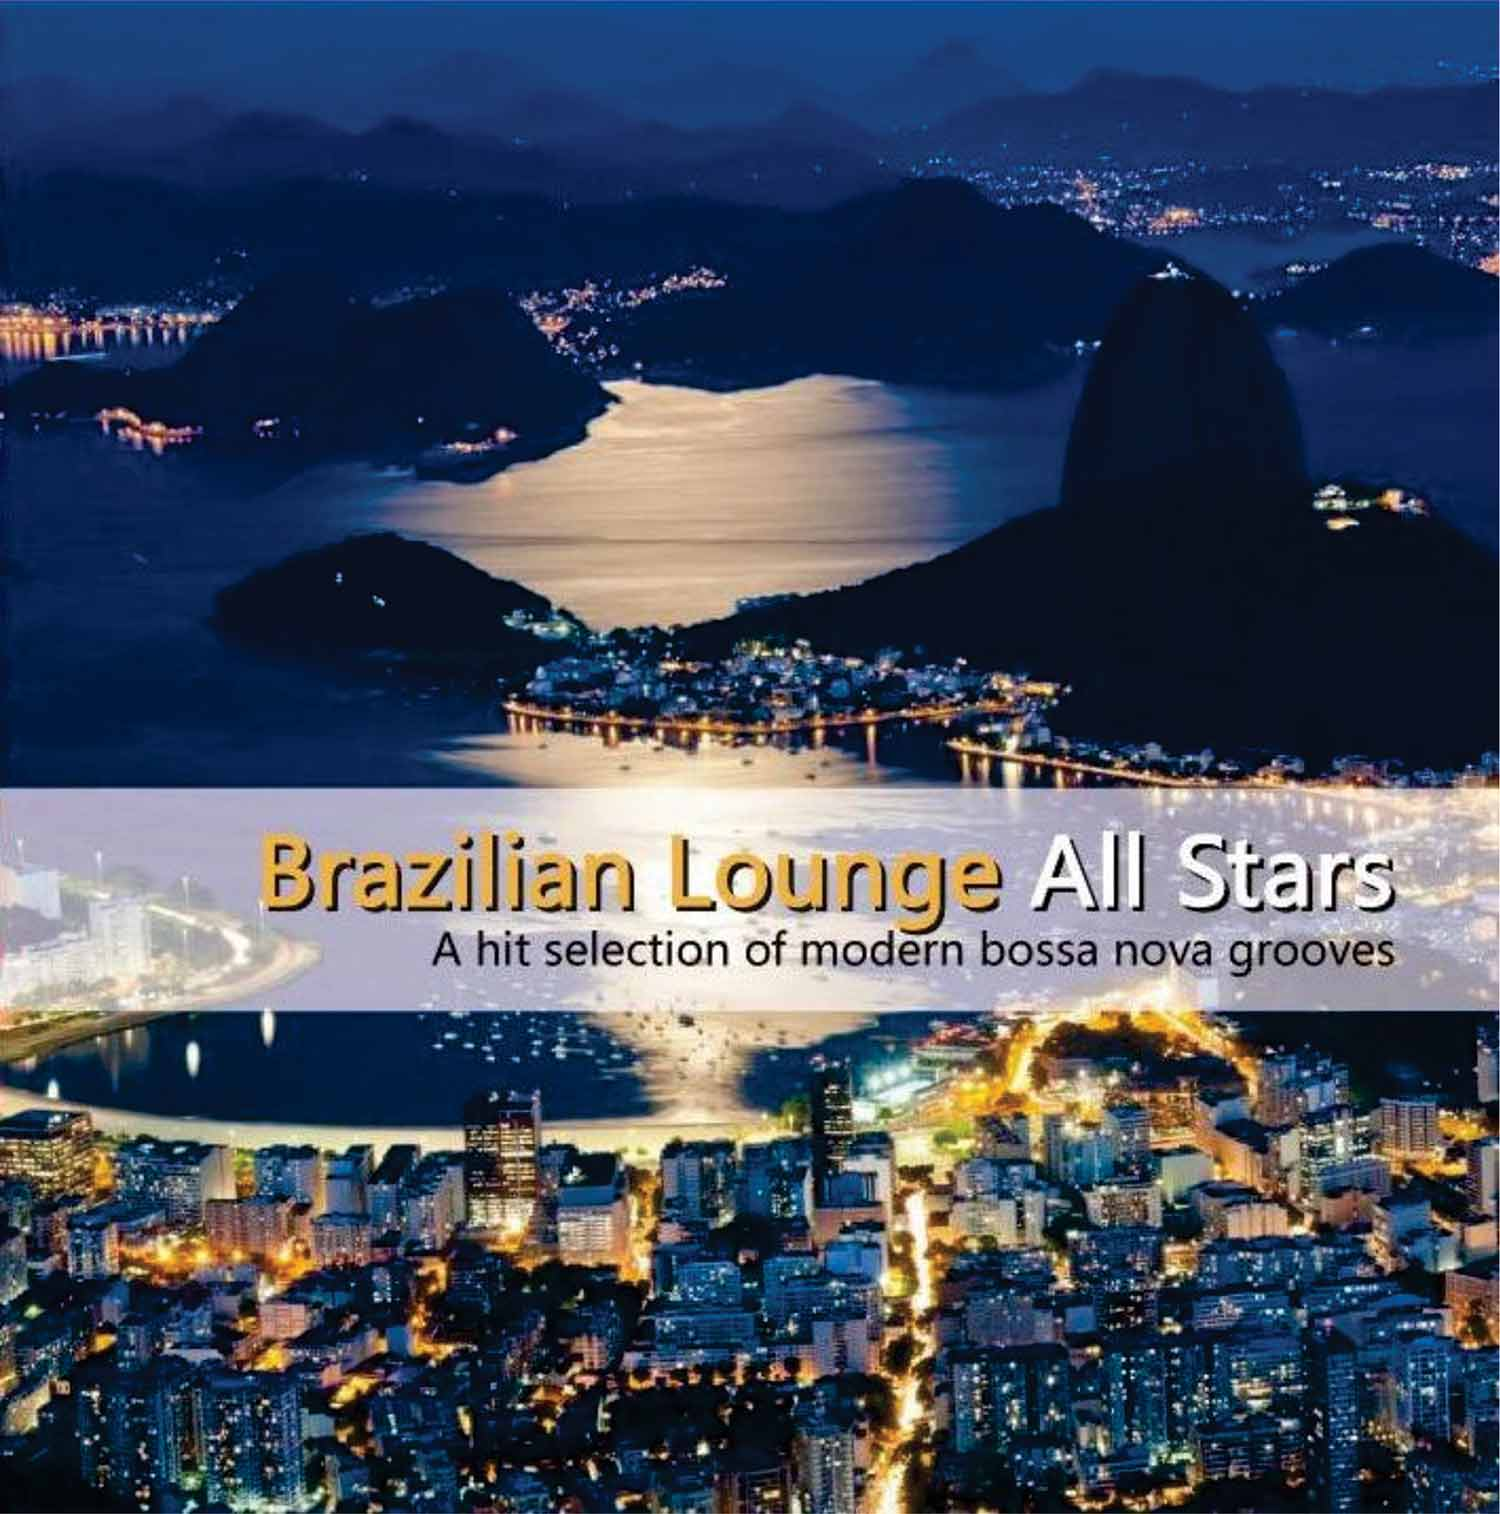 Brazilian Lounge All Stars